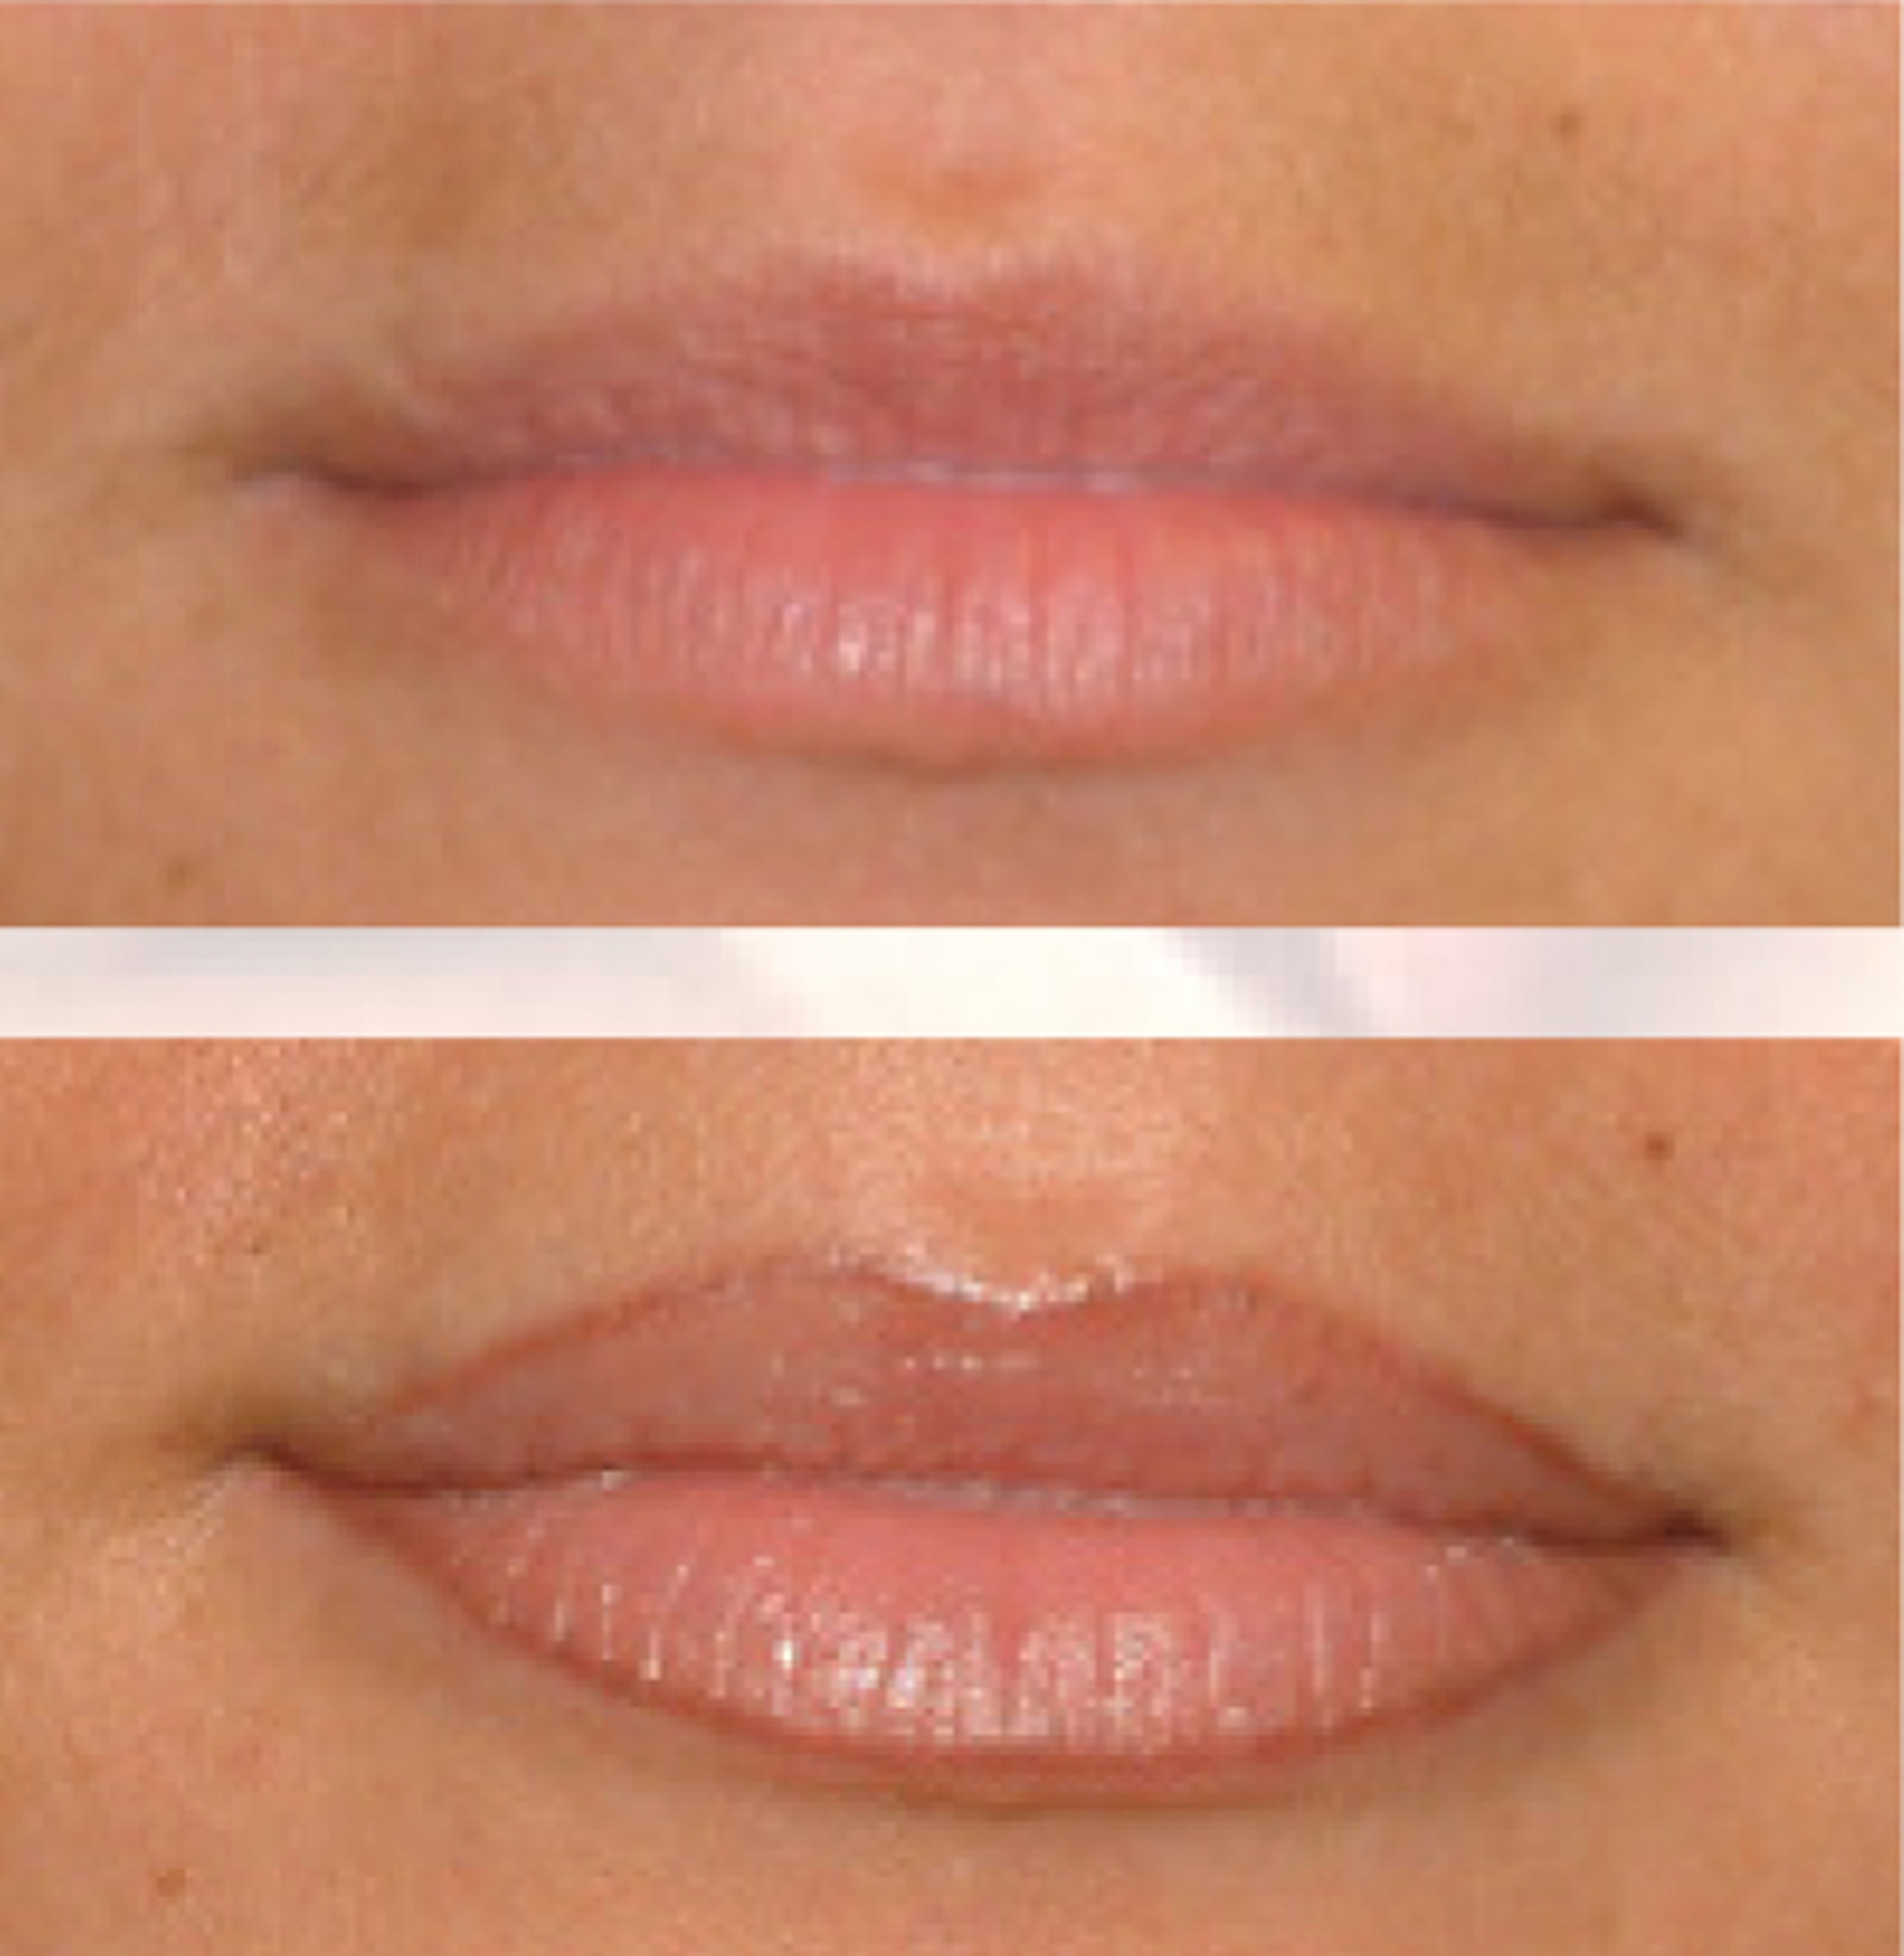 Ecuri_full lips before after a